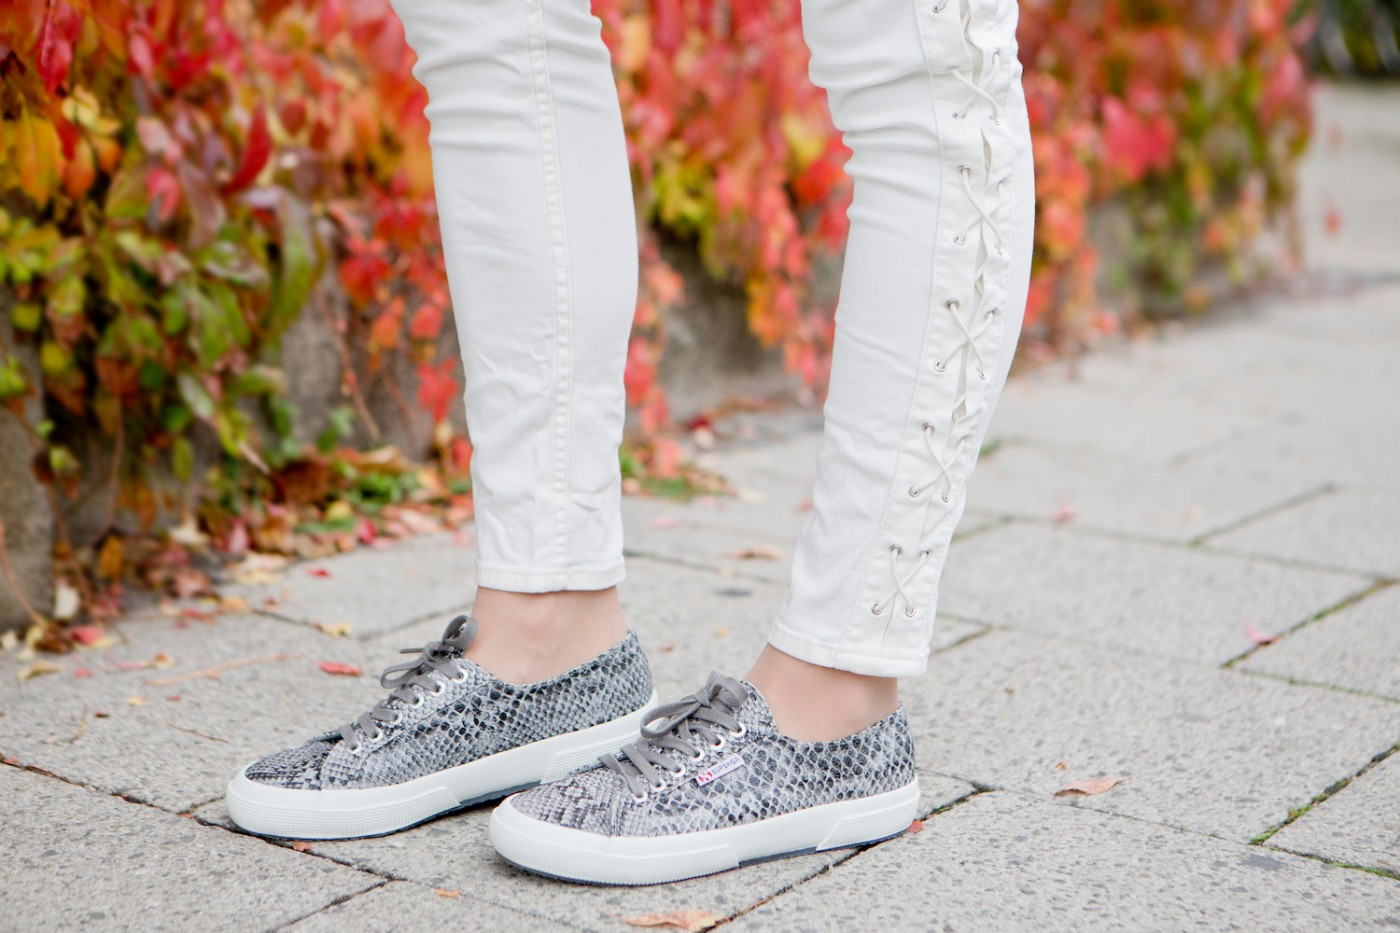 More and More, snake pring sneakers Superga, grey look, grey inspiration